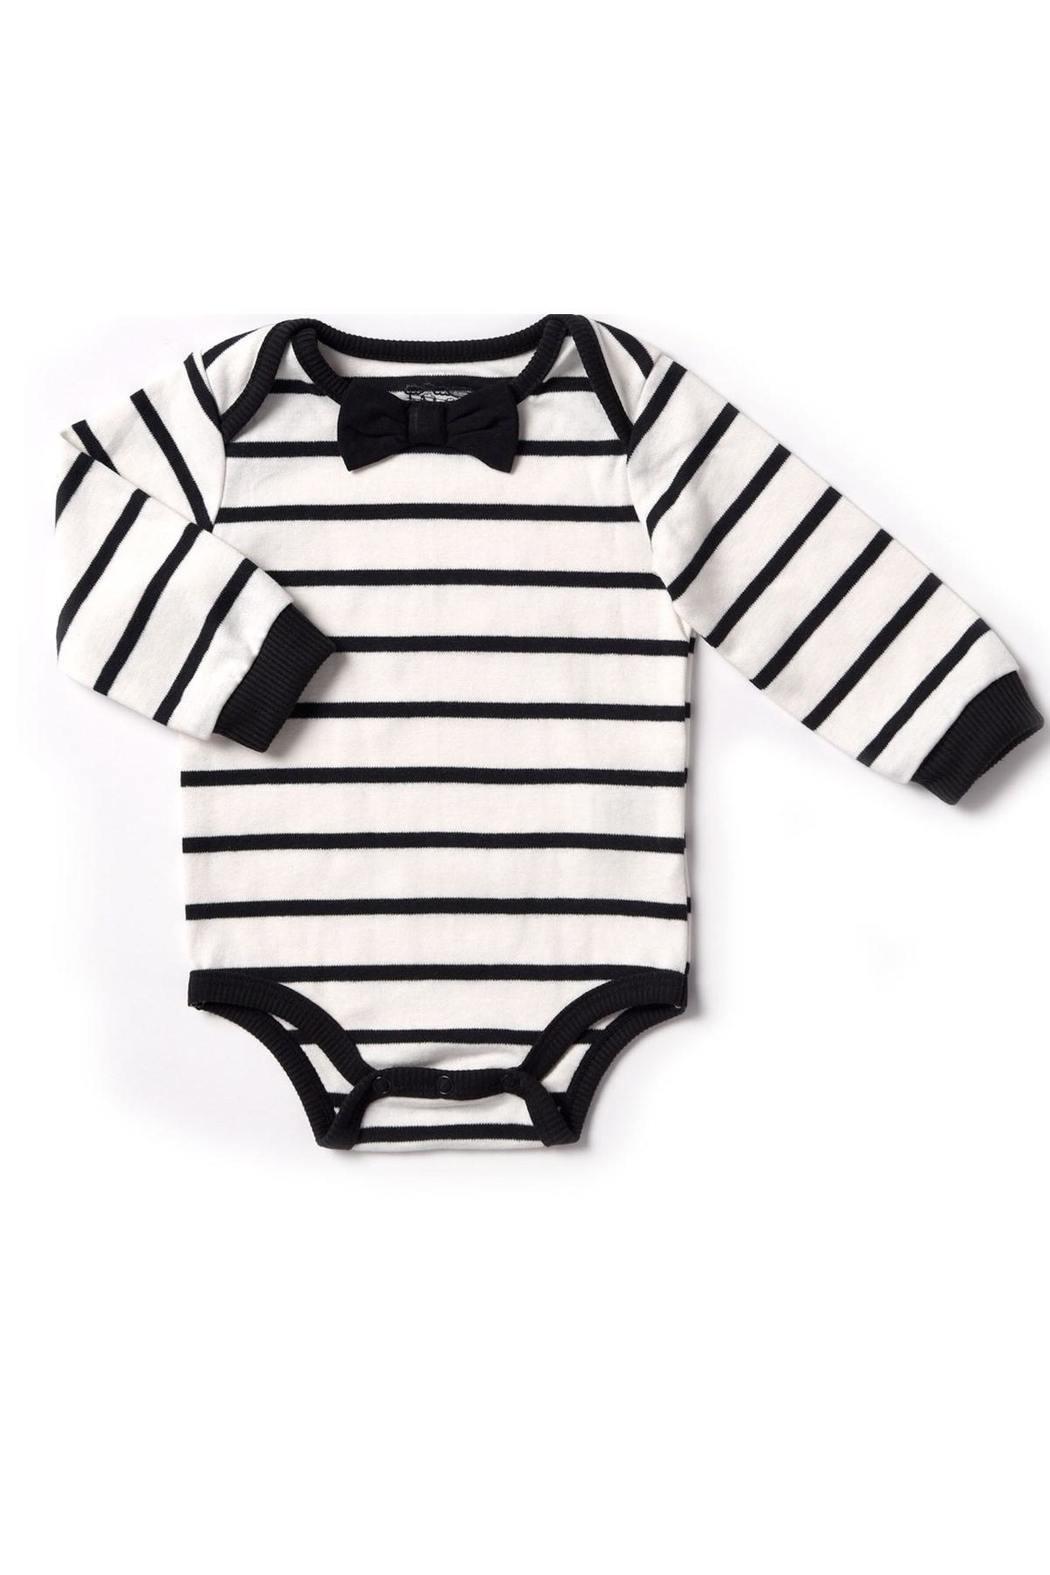 0d734a1059fc6 Kapital K Bodysuit With Bowtie from Ohio by Chic Chateau — Shopkids